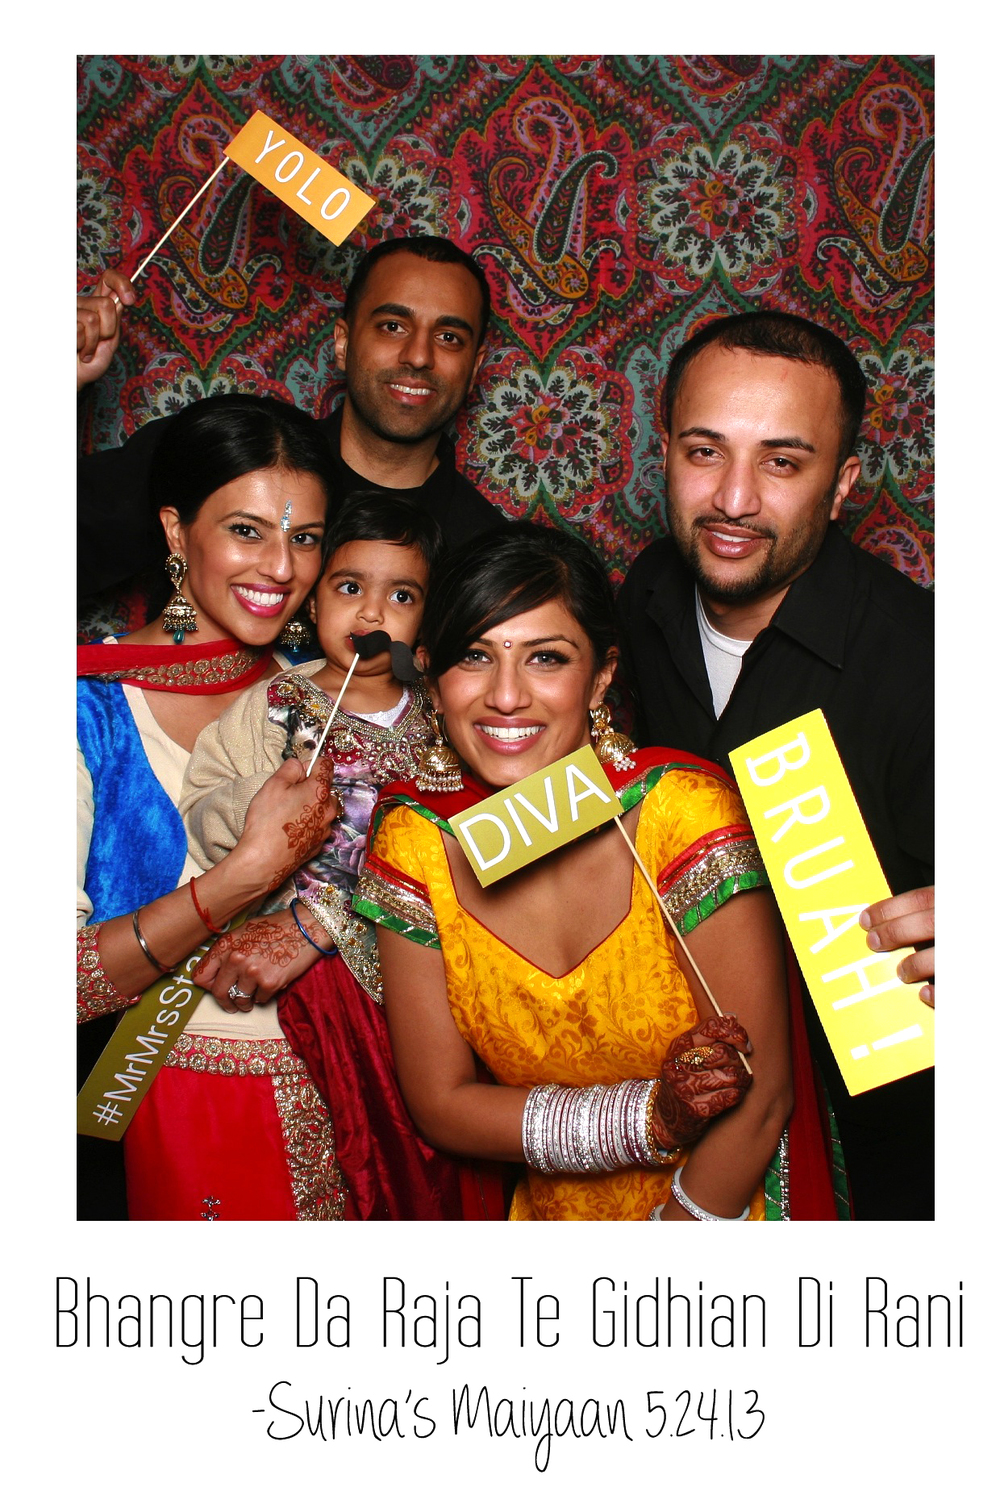 punjabi wedding.jpg